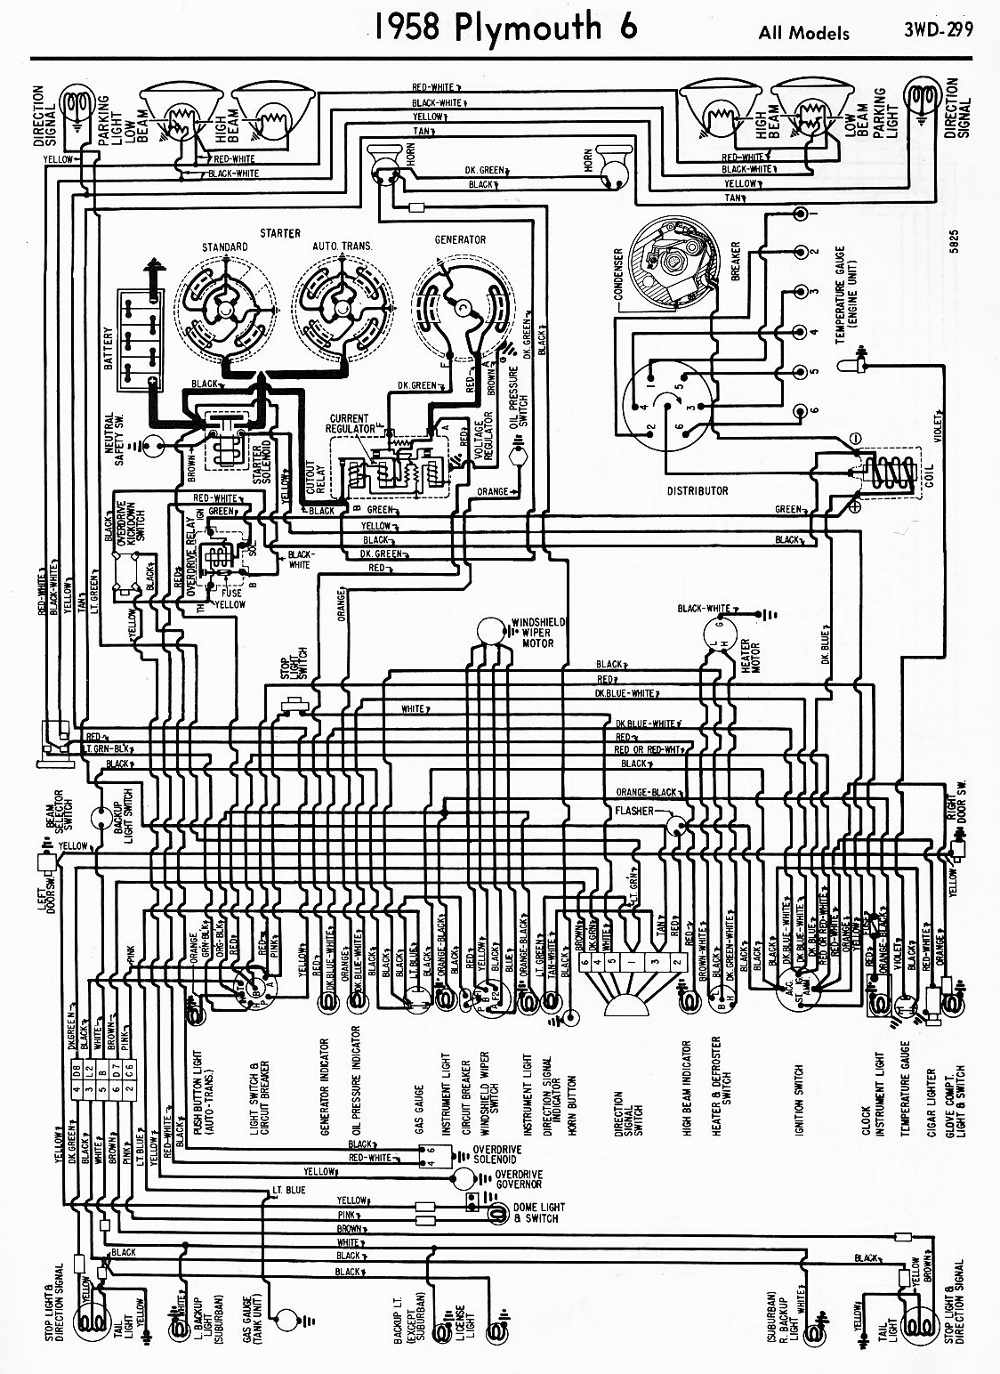 wiring diagrams of 1958 ford 6 all models wiring diagram writeplymouth lights wiring diagram wiring diagram 1947 plymouth wiring diagram wiring diagramswiring diagrams 911 1958 plymouth